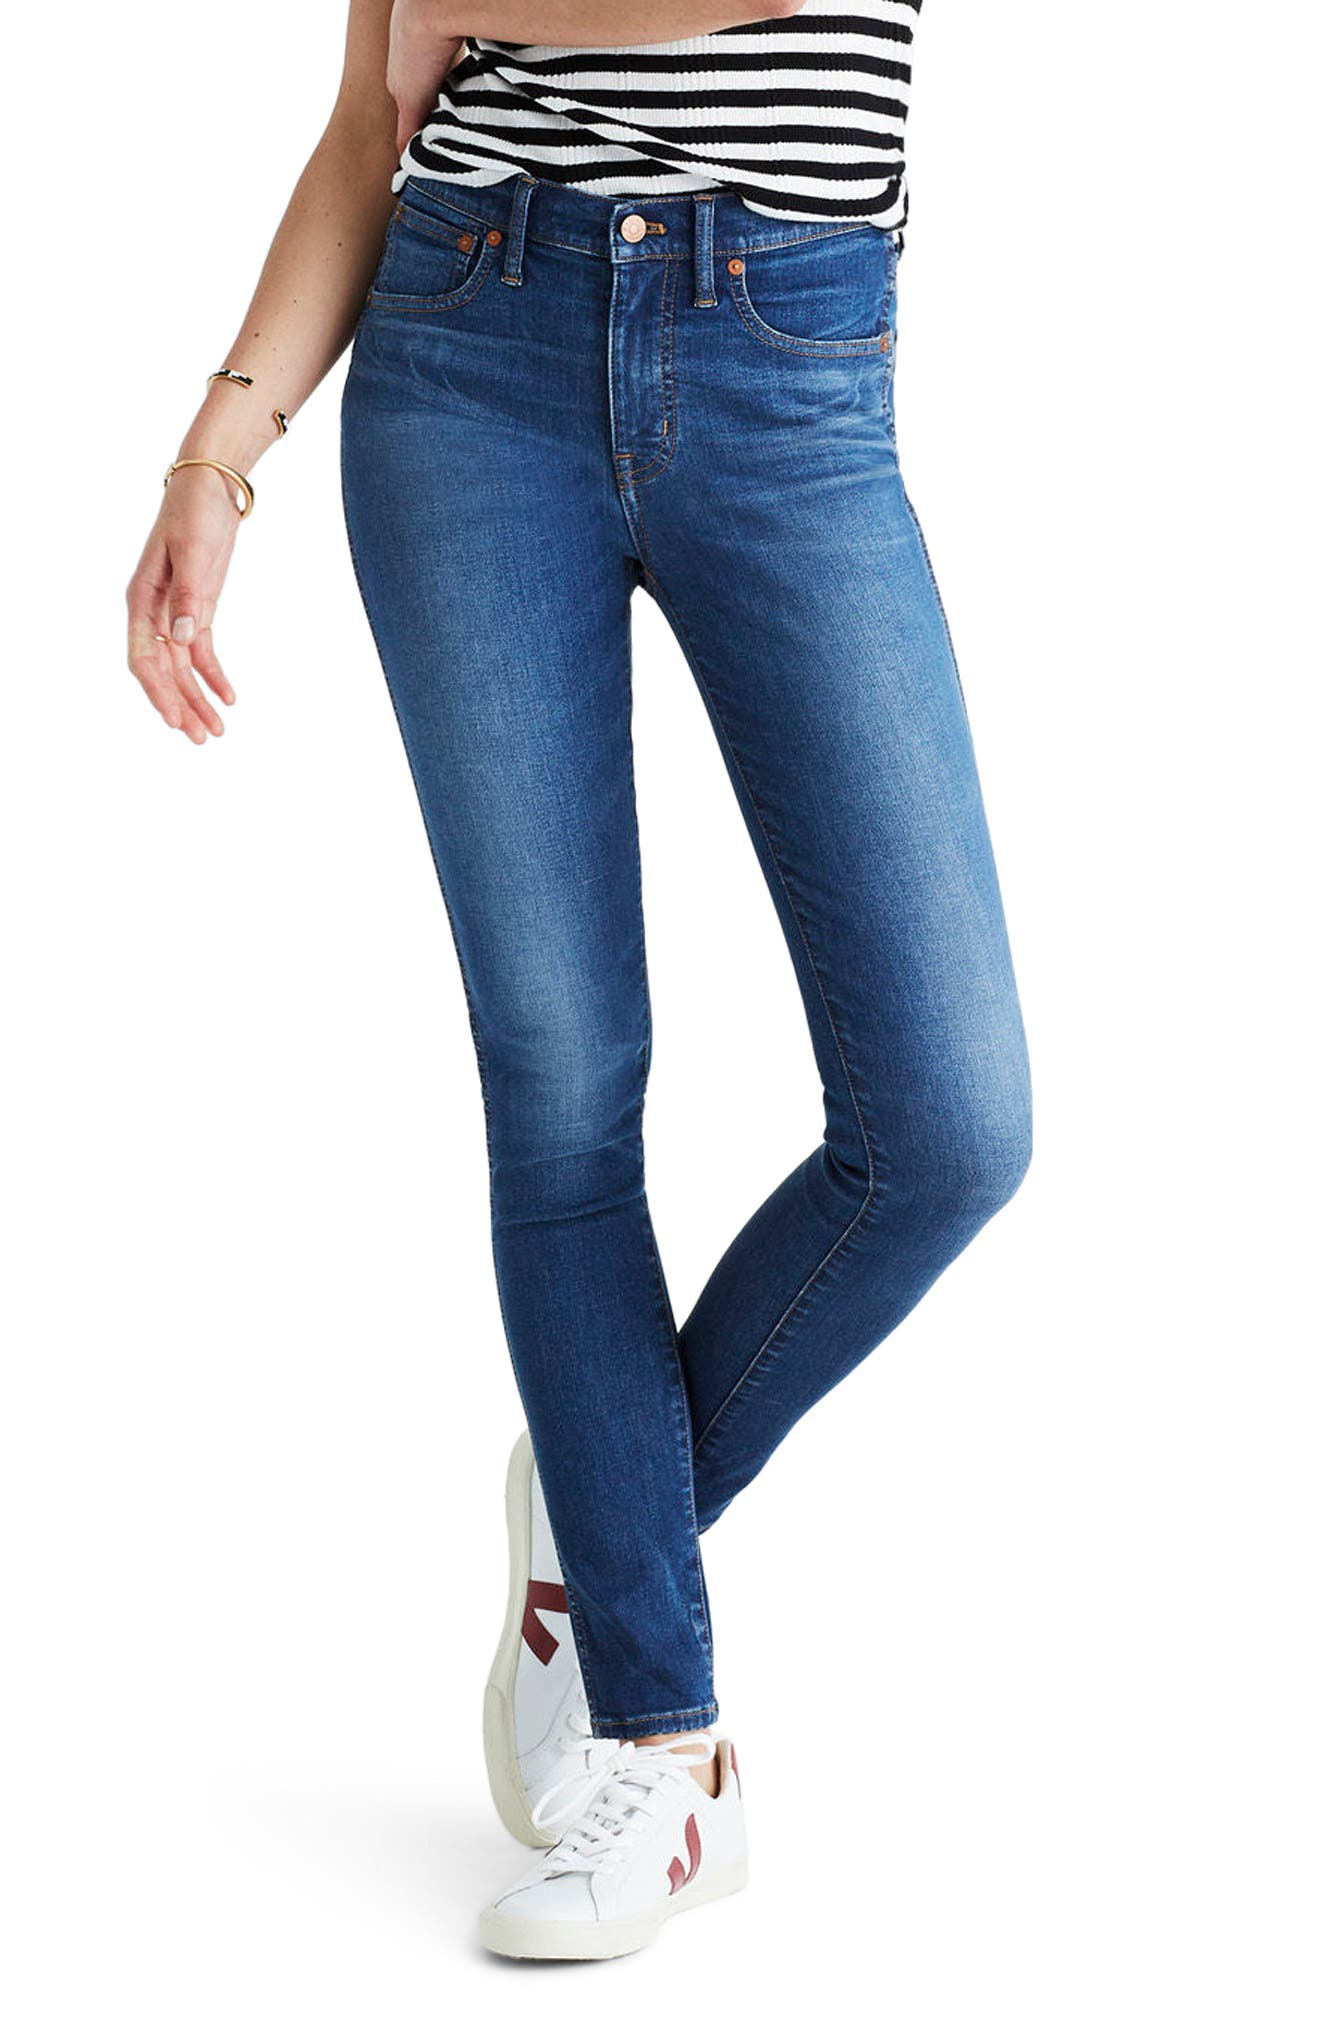 9-Inch High Waist Skinny Jeans,                         Main,                         color, Patty Wash